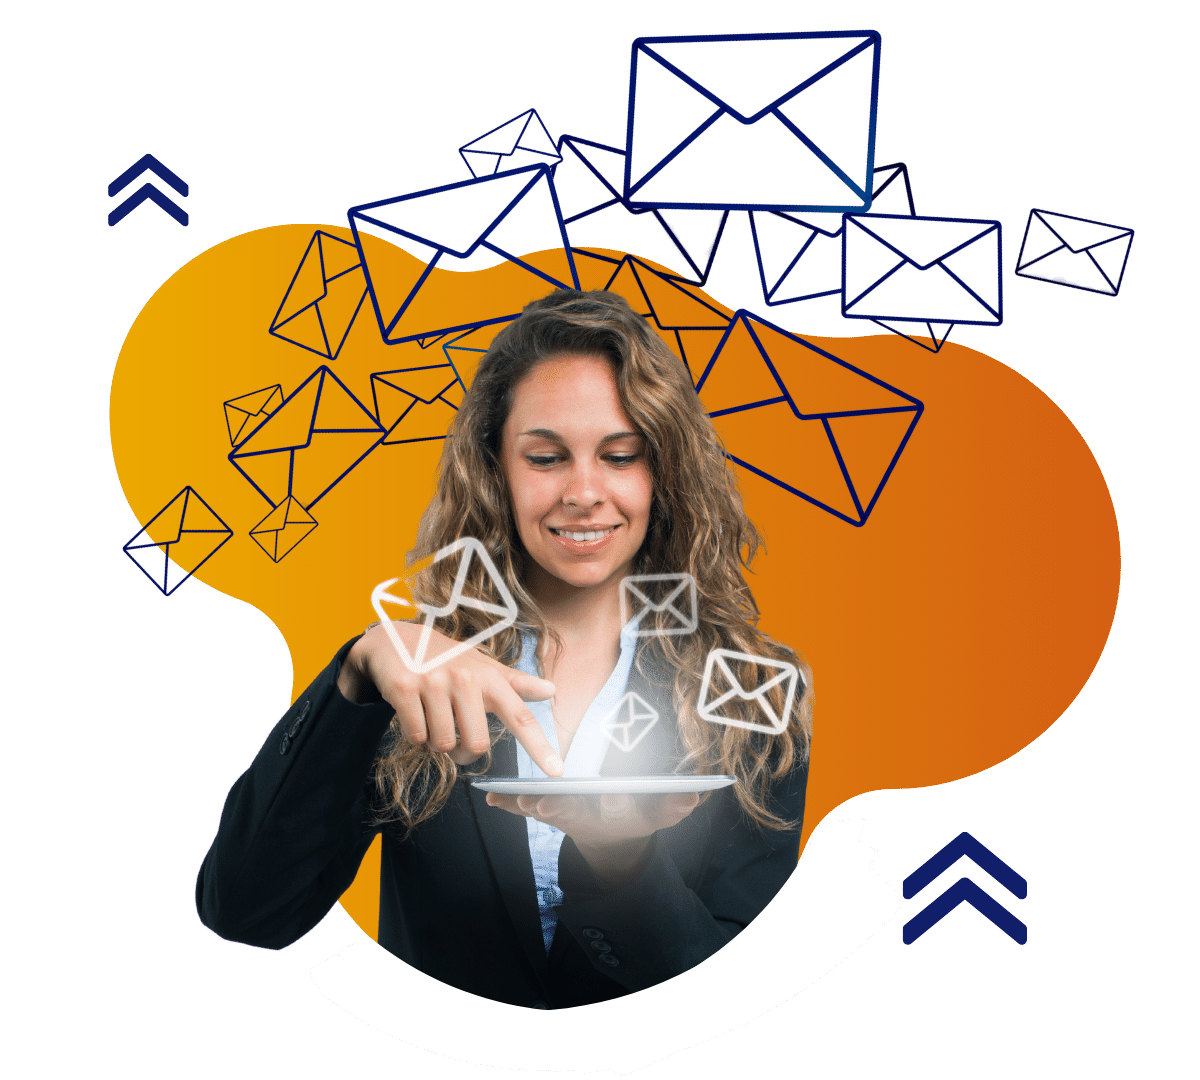 Email lady 1